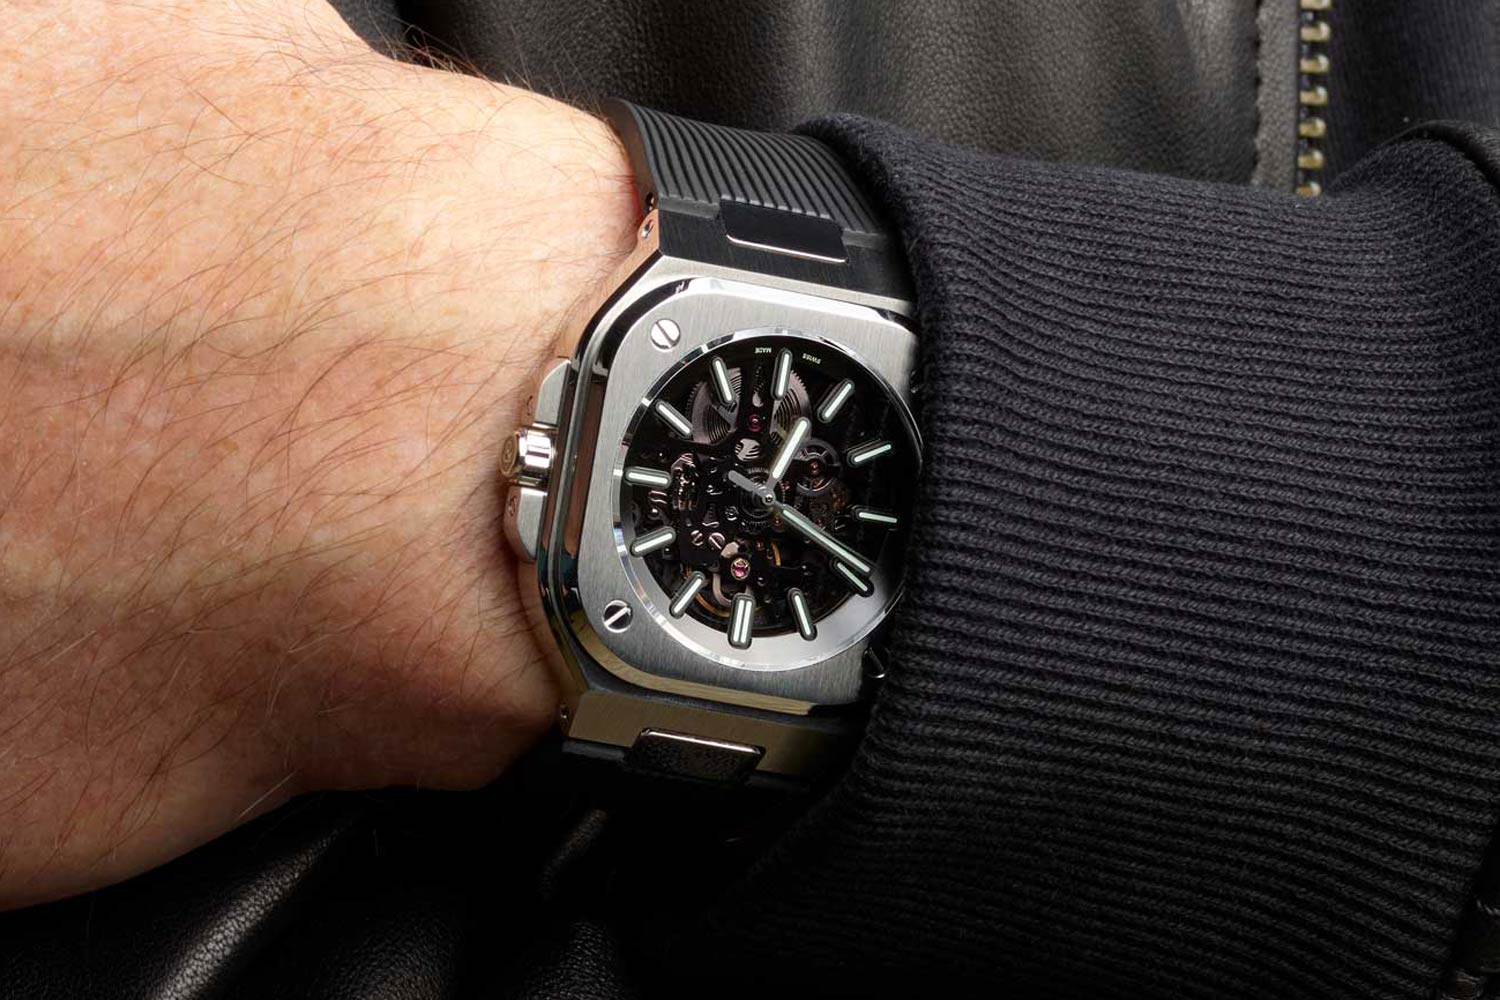 Introduced this year, the BR 05 Skeleton NIGHTLUM with its blacked-out movement and seemingly floating luminous hour markers and hands is one of the coolest watches from Bell & Ross.